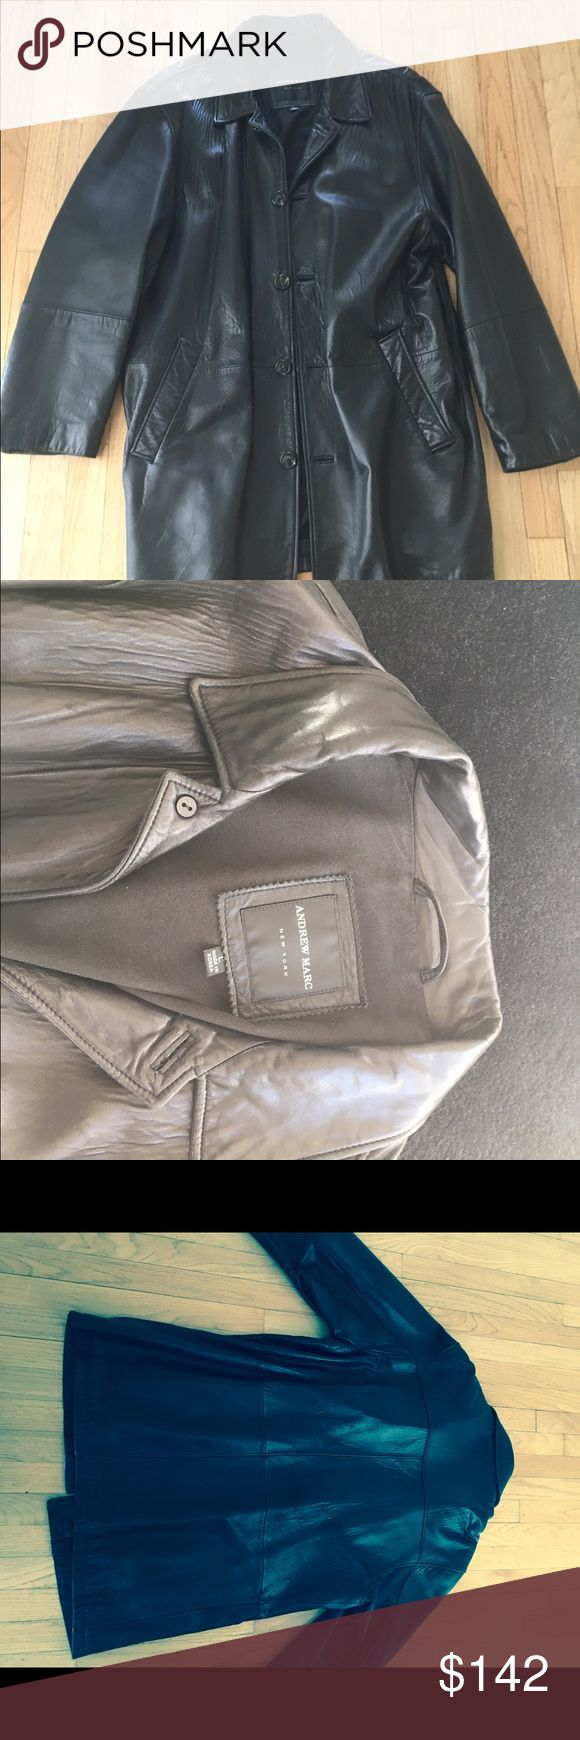 Men's Andrew Marc Black Leather Coat Used Andrew Marc lambskin leather coat. Car coat length size large. Used very lightly w no marks. Andrew Marc Jackets & Coats